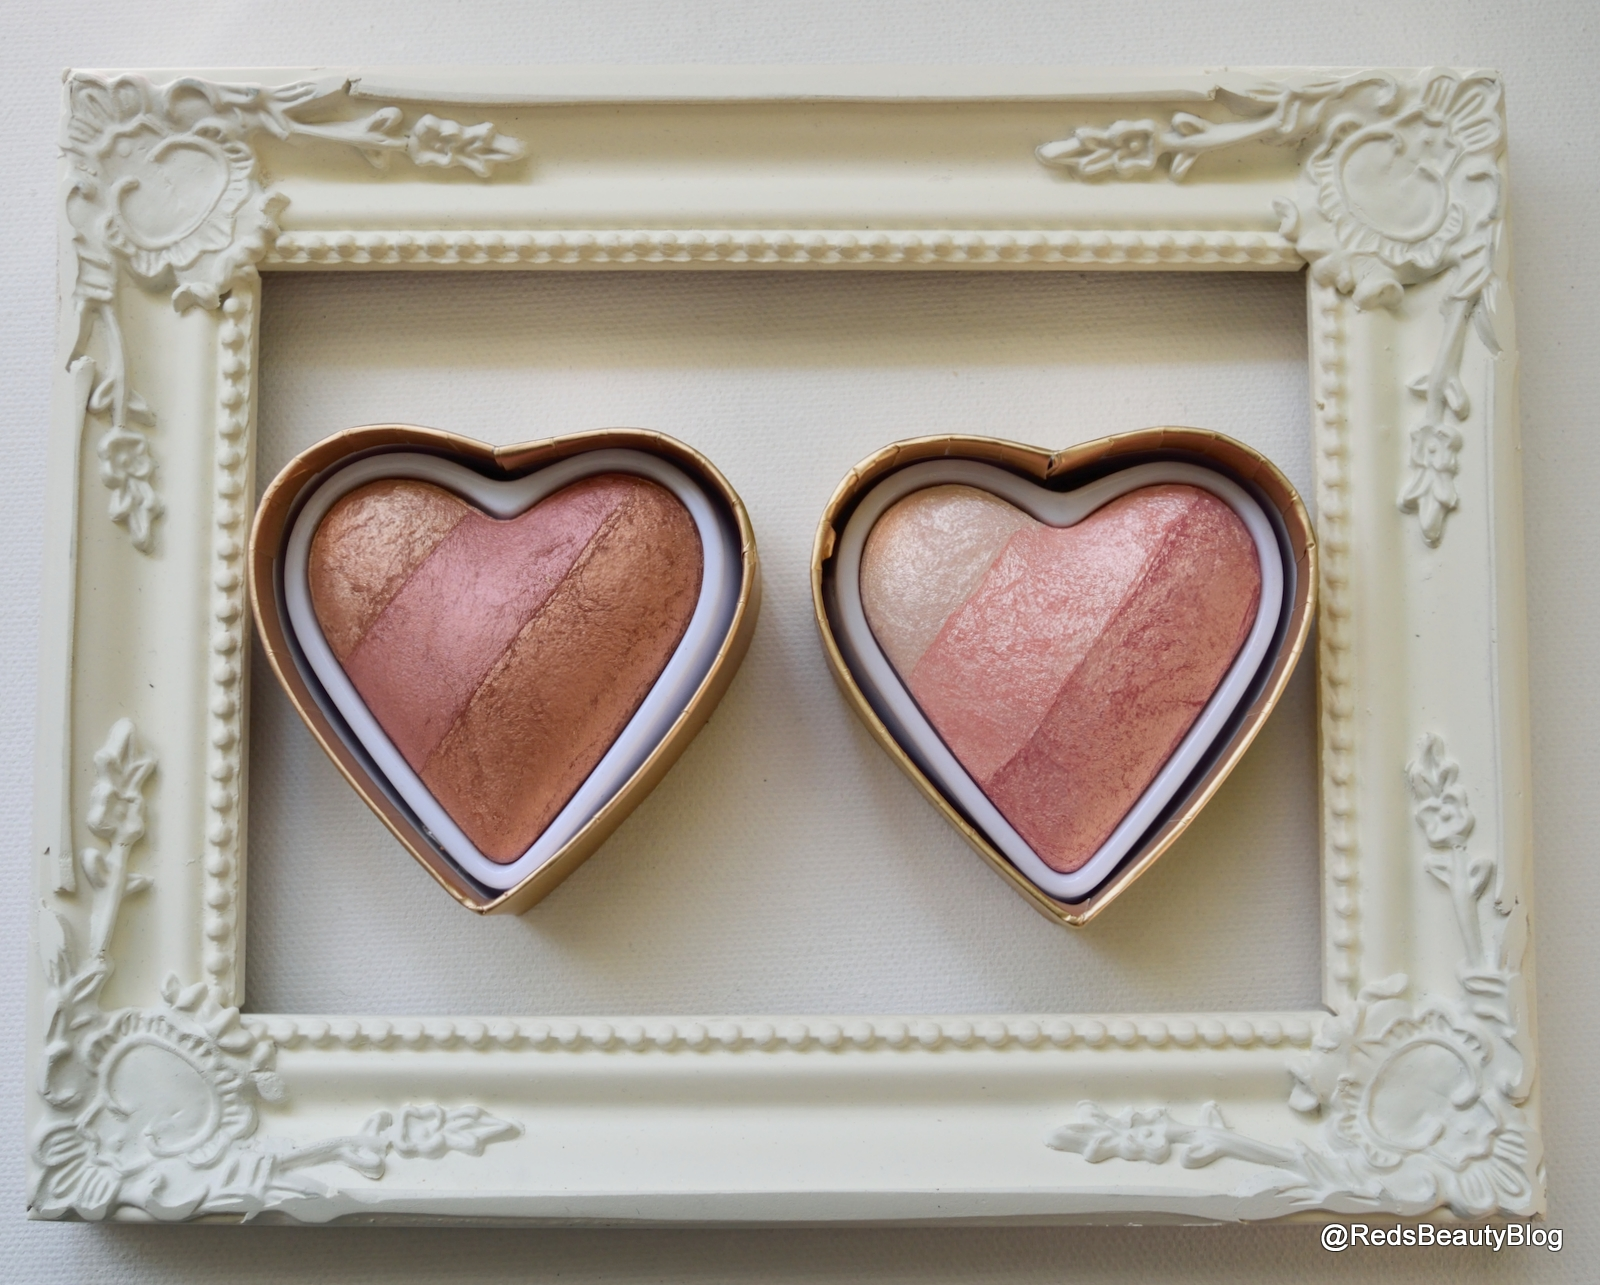 a picture of Iced Hearts and Peachy Keen Heart from Makeup Revolution Blushing Hearts